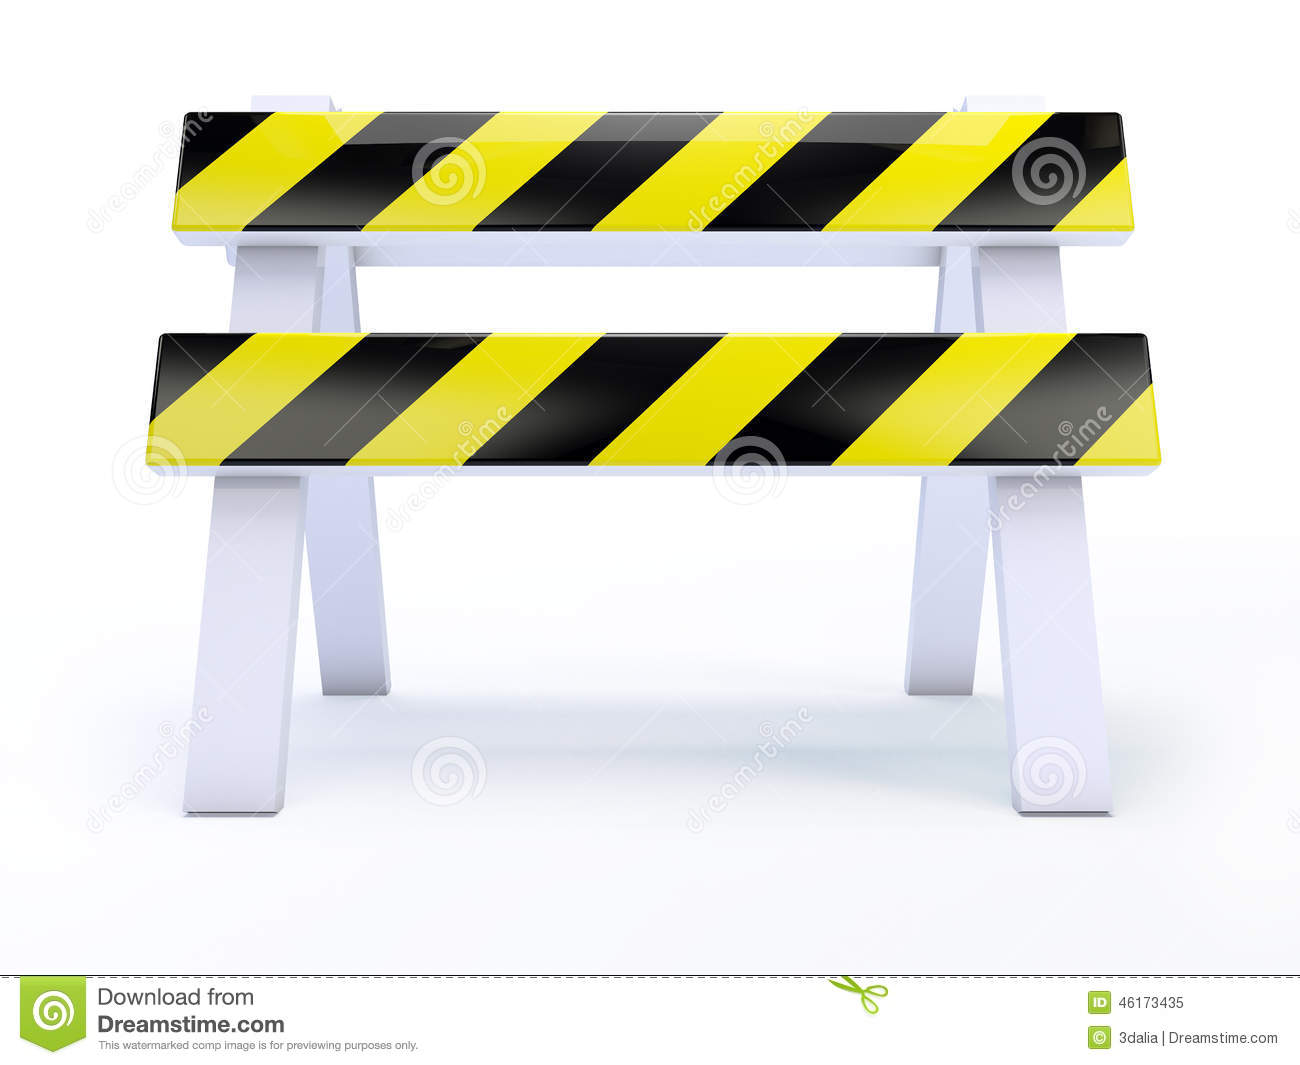 Construction road block clipart no background.